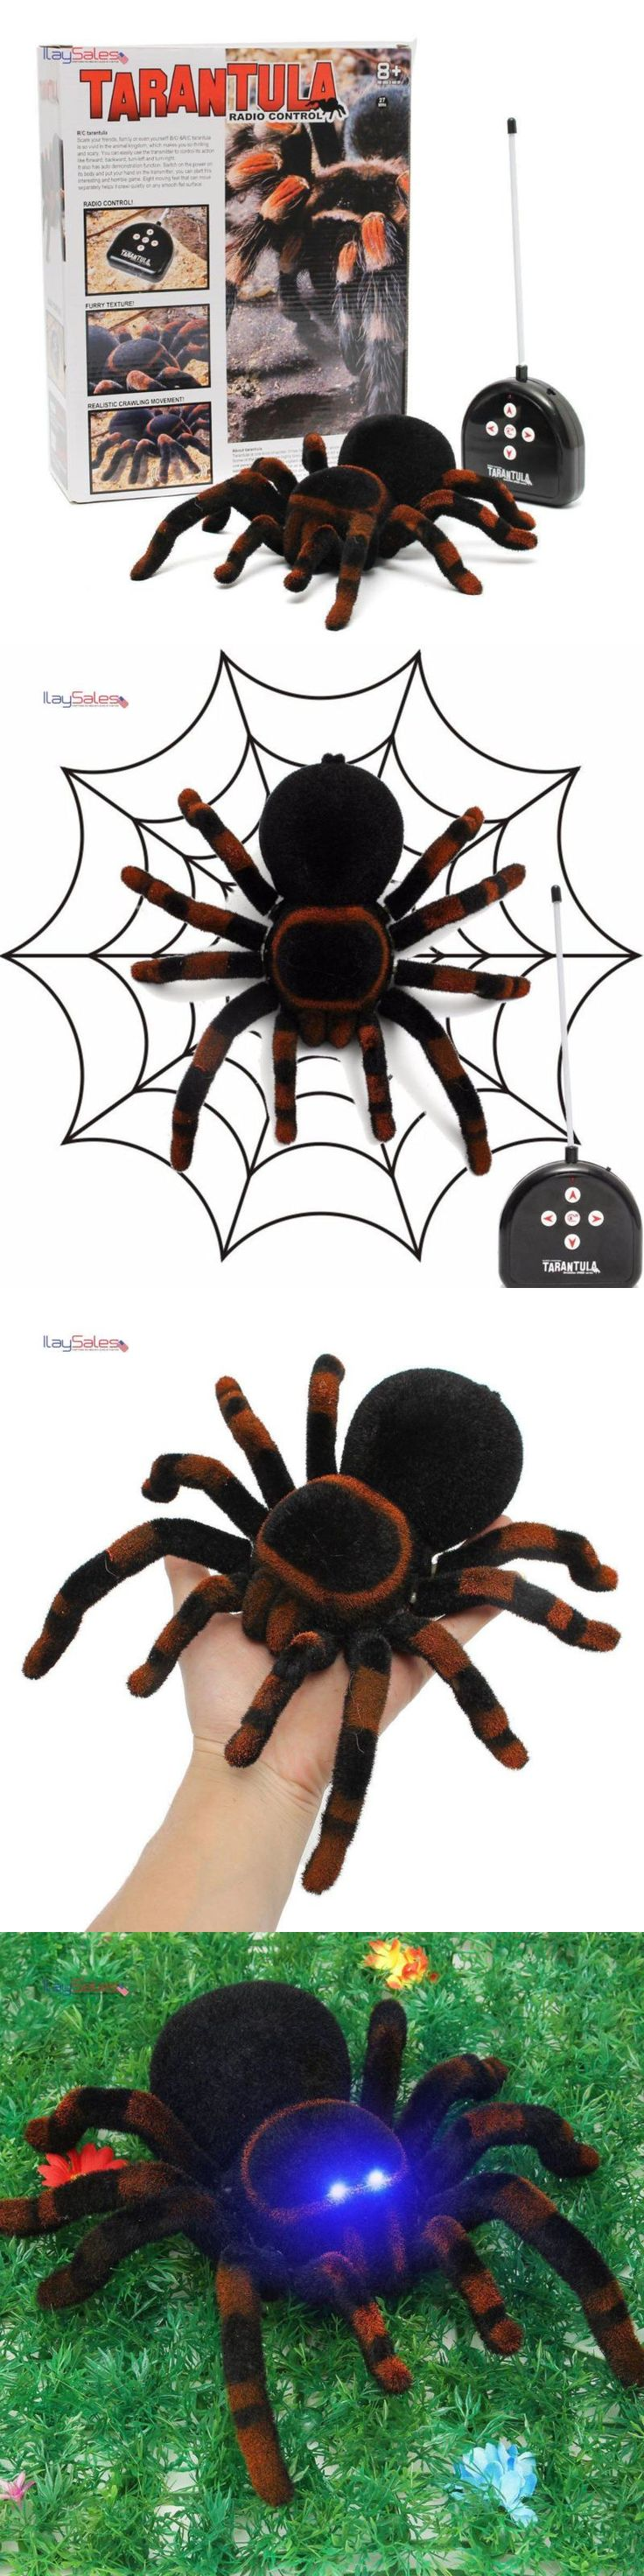 Gag Gifts 19257: Fake Spider Scary Toy Remote To Prank Toy Joke Trick Real Locking No Batteries -> BUY IT NOW ONLY: $40.1 on eBay!